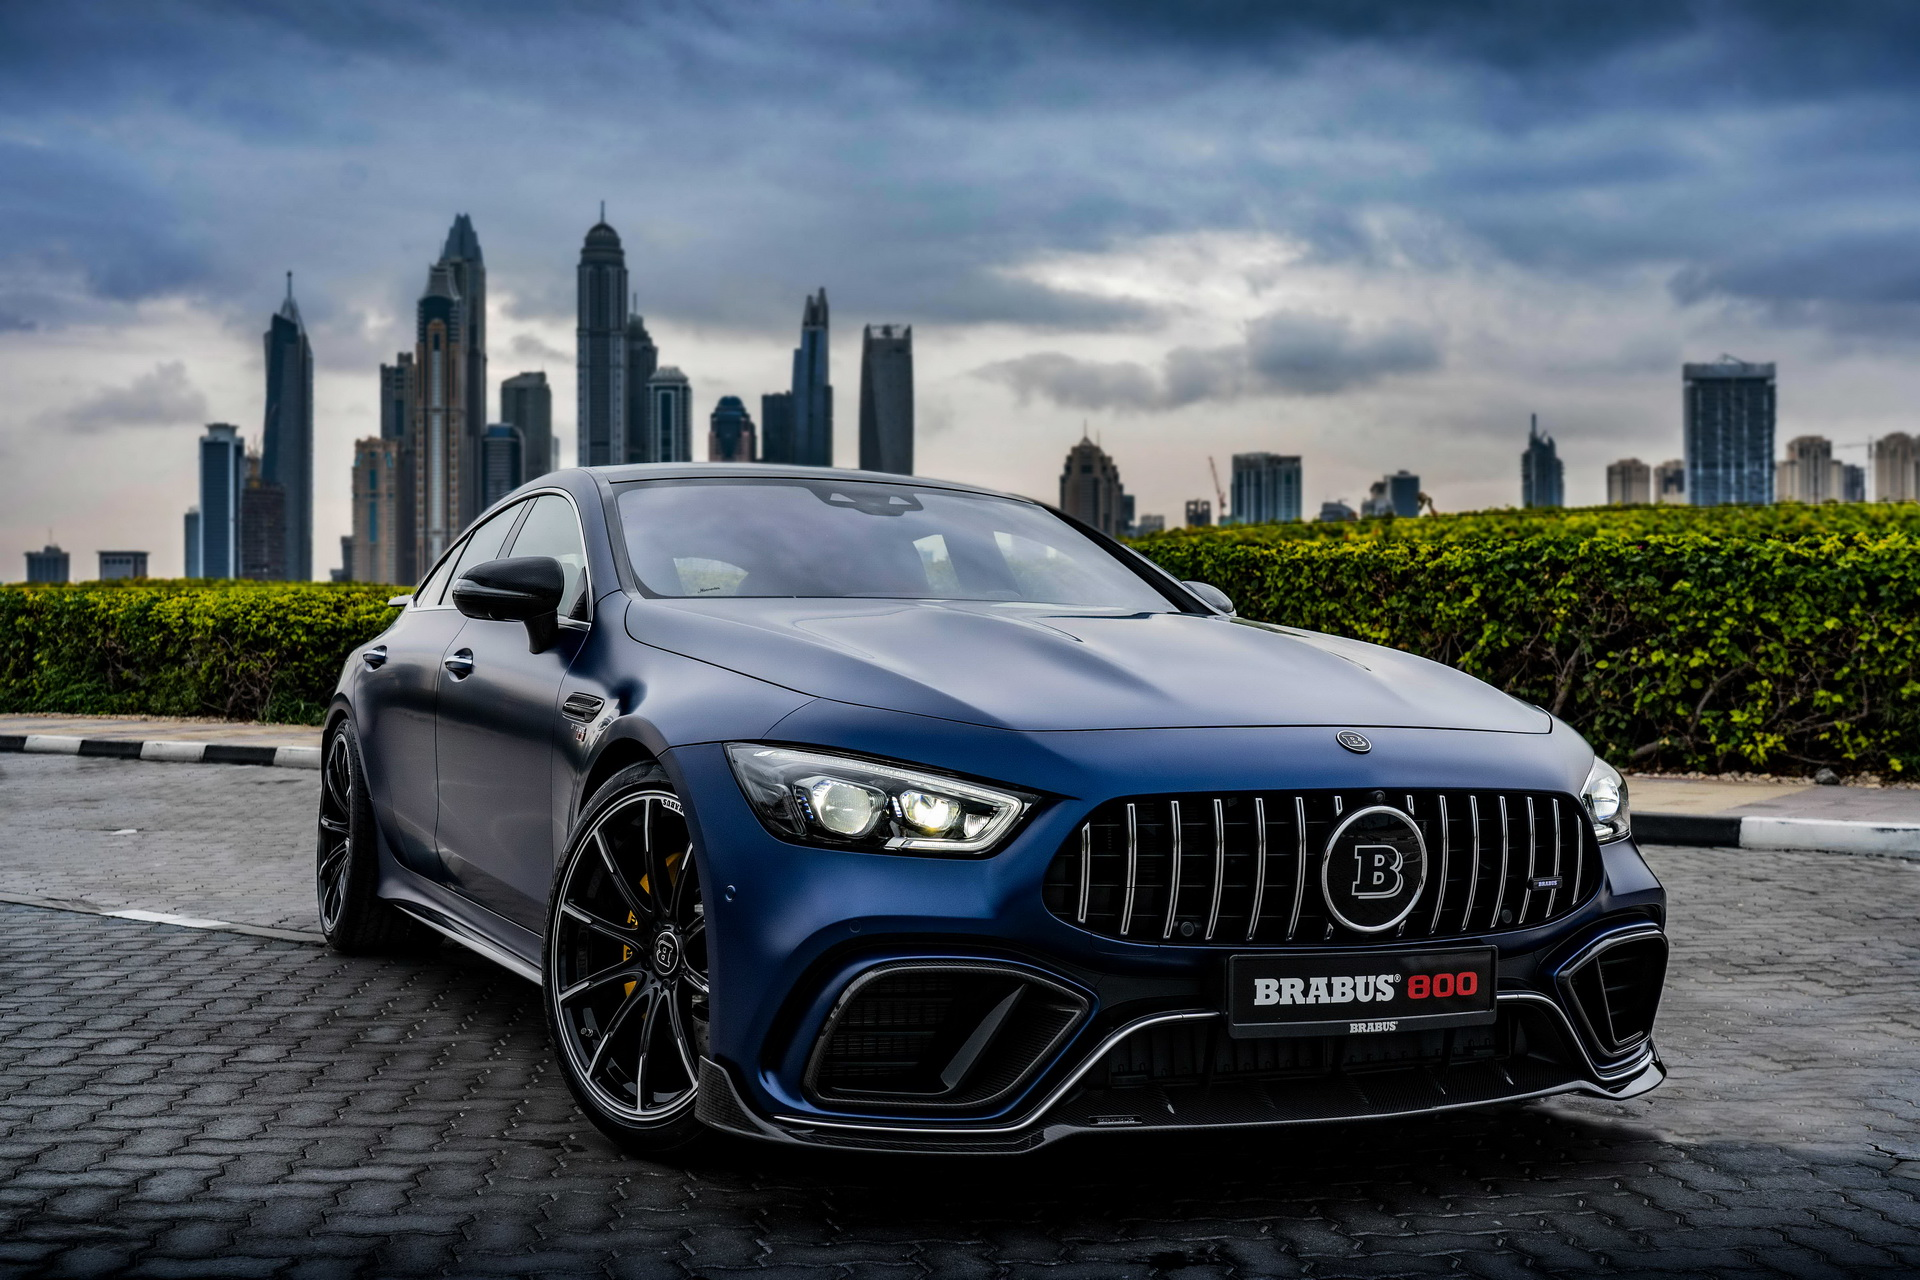 A year ago, German tuner Brabus devised a complex tuning kit for the opulent Mercedes-AMG GT 63 S, and this week… Wait, no. It did not update it. In fact, the company decided the kit was perfect as is, so it just took it outdoors on an extended photoshoot.